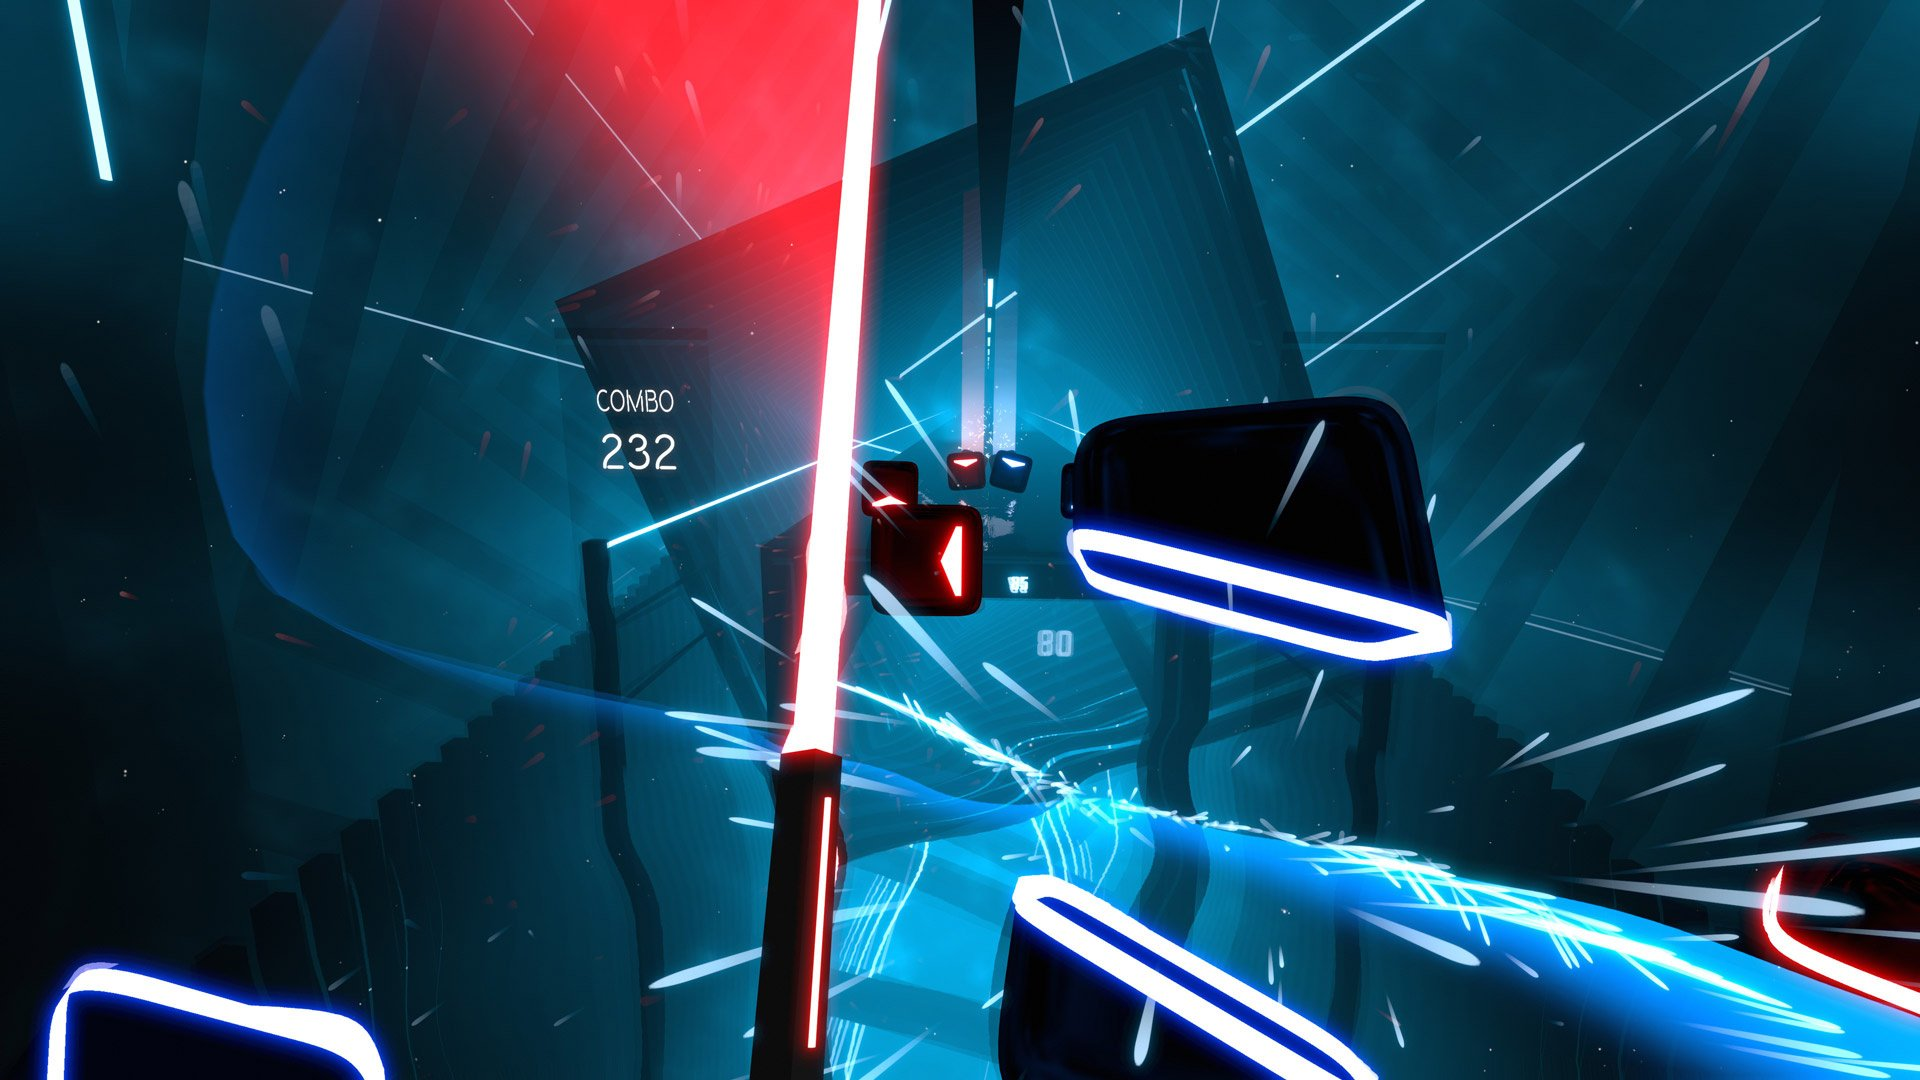 Expert+ Difficulty Arrives in New Update for Beat Saber on PSVR